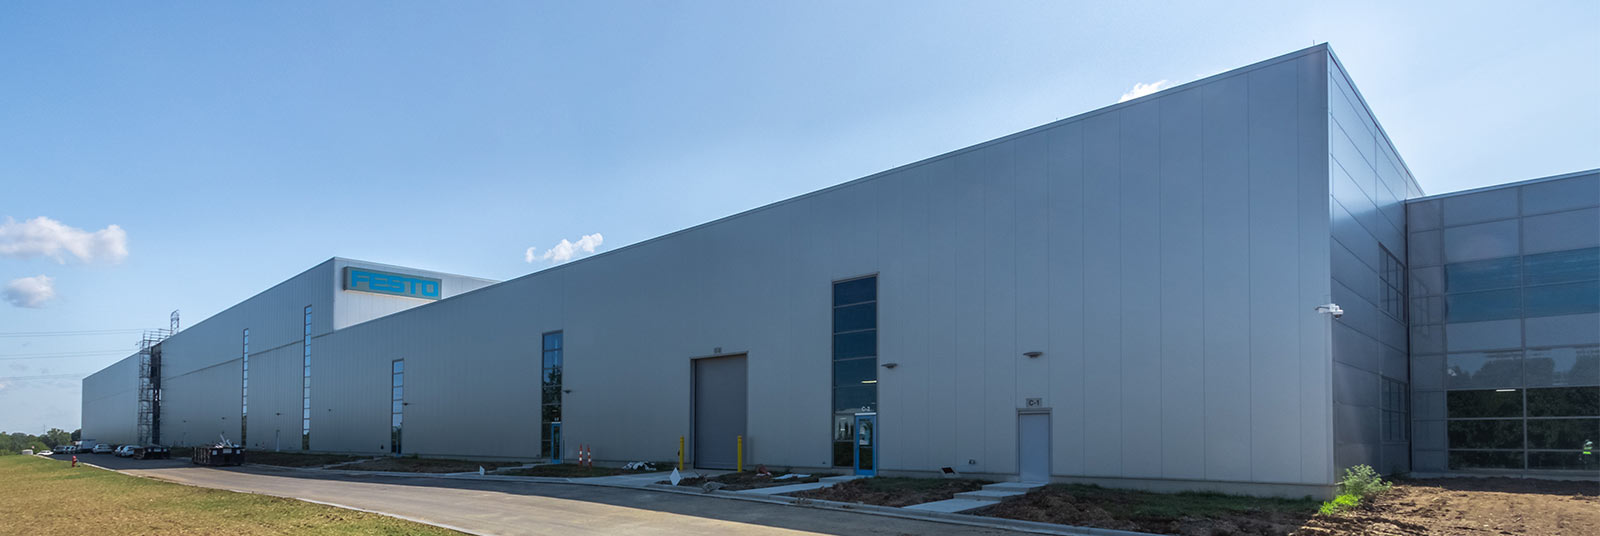 The exterior completed portion of the FESTO industrial facility expansion in Mason, Ohio.